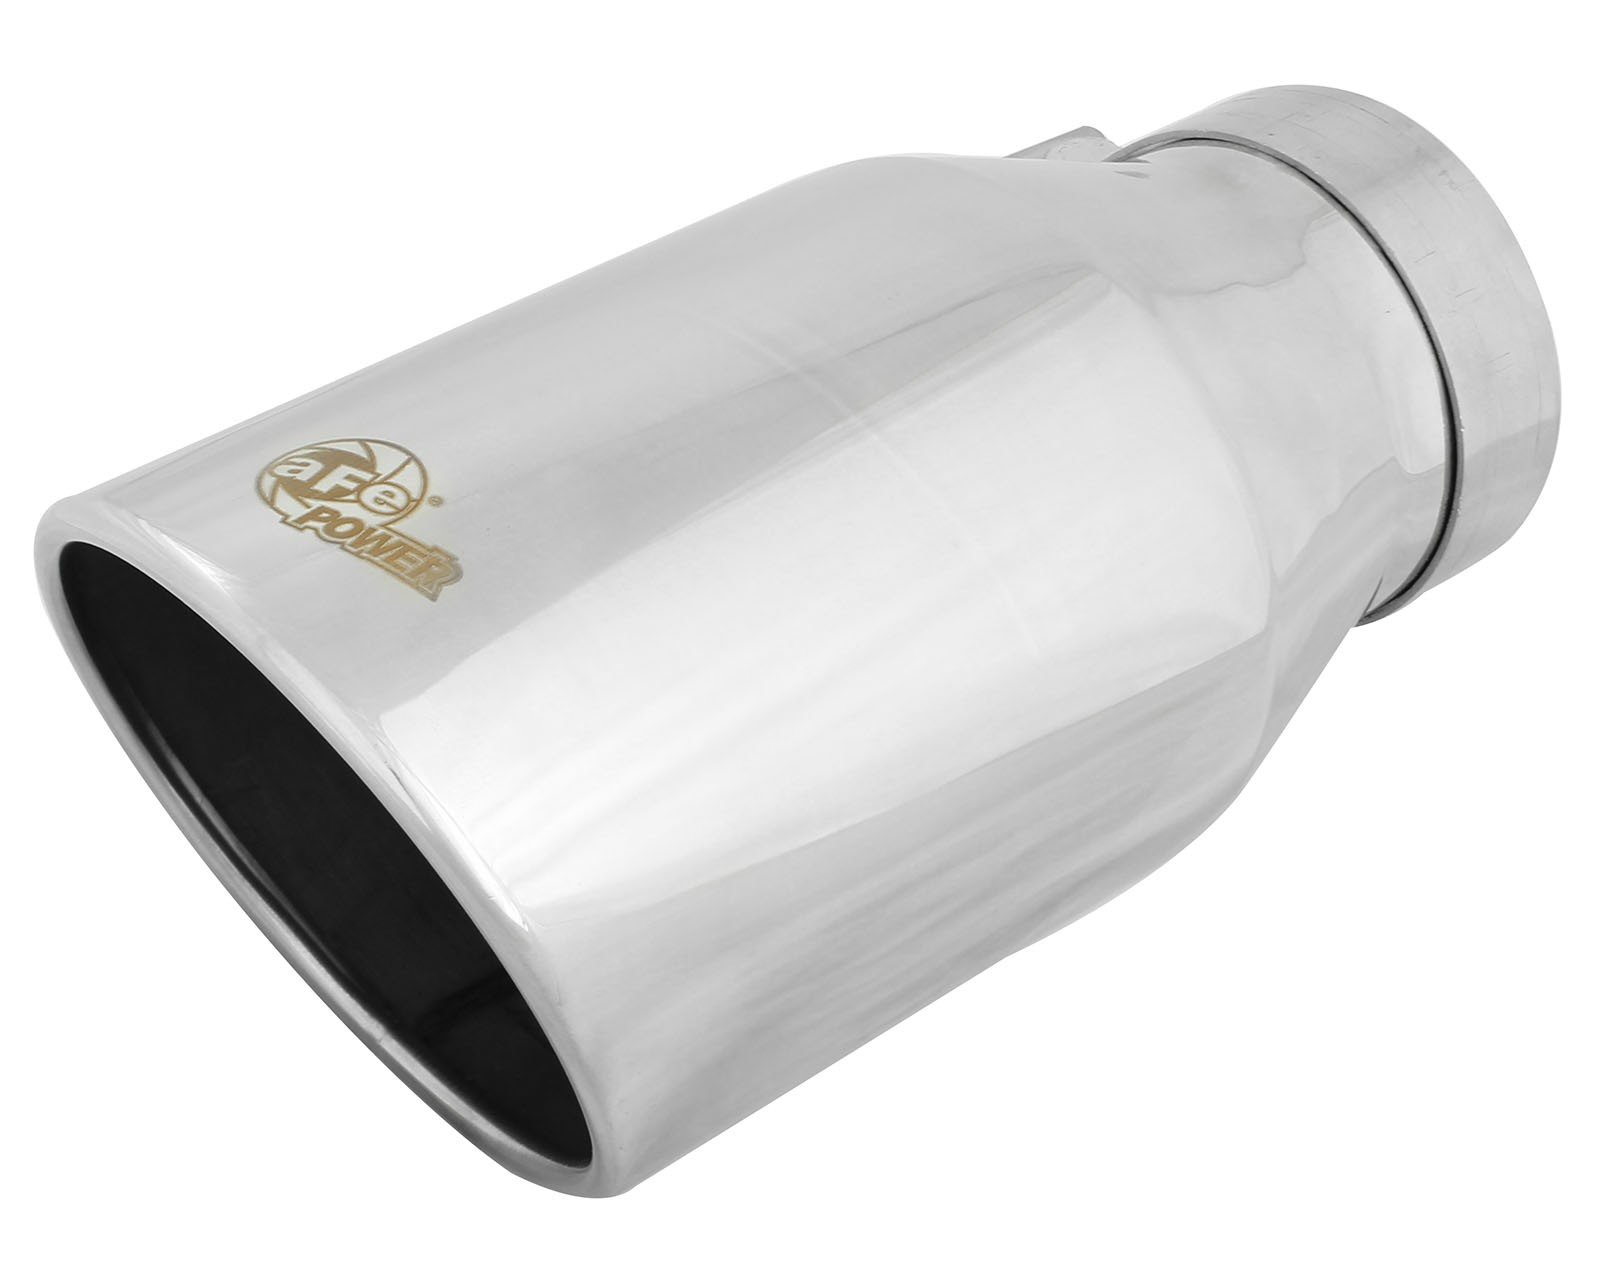 """aFe POWER 49T40604-P12 MACH Force-Xp 4"""" 304 Stainless Steel Exhaust Tip"""